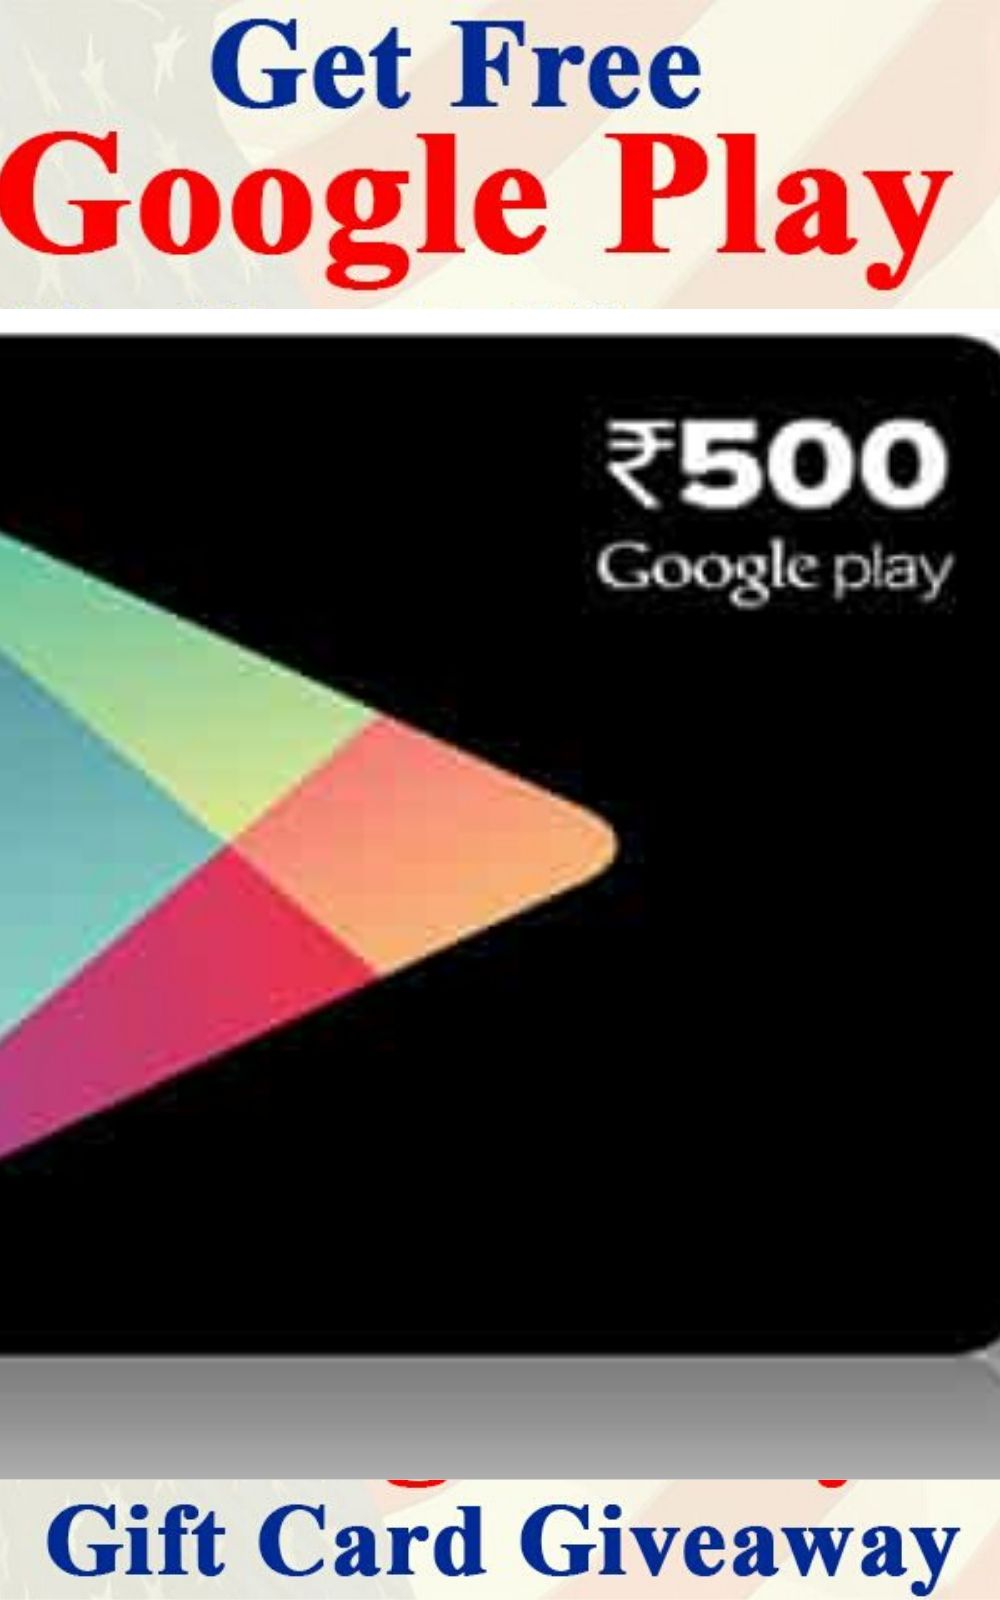 Google Play Gift Card Giveaway To Get This Offer You Need To